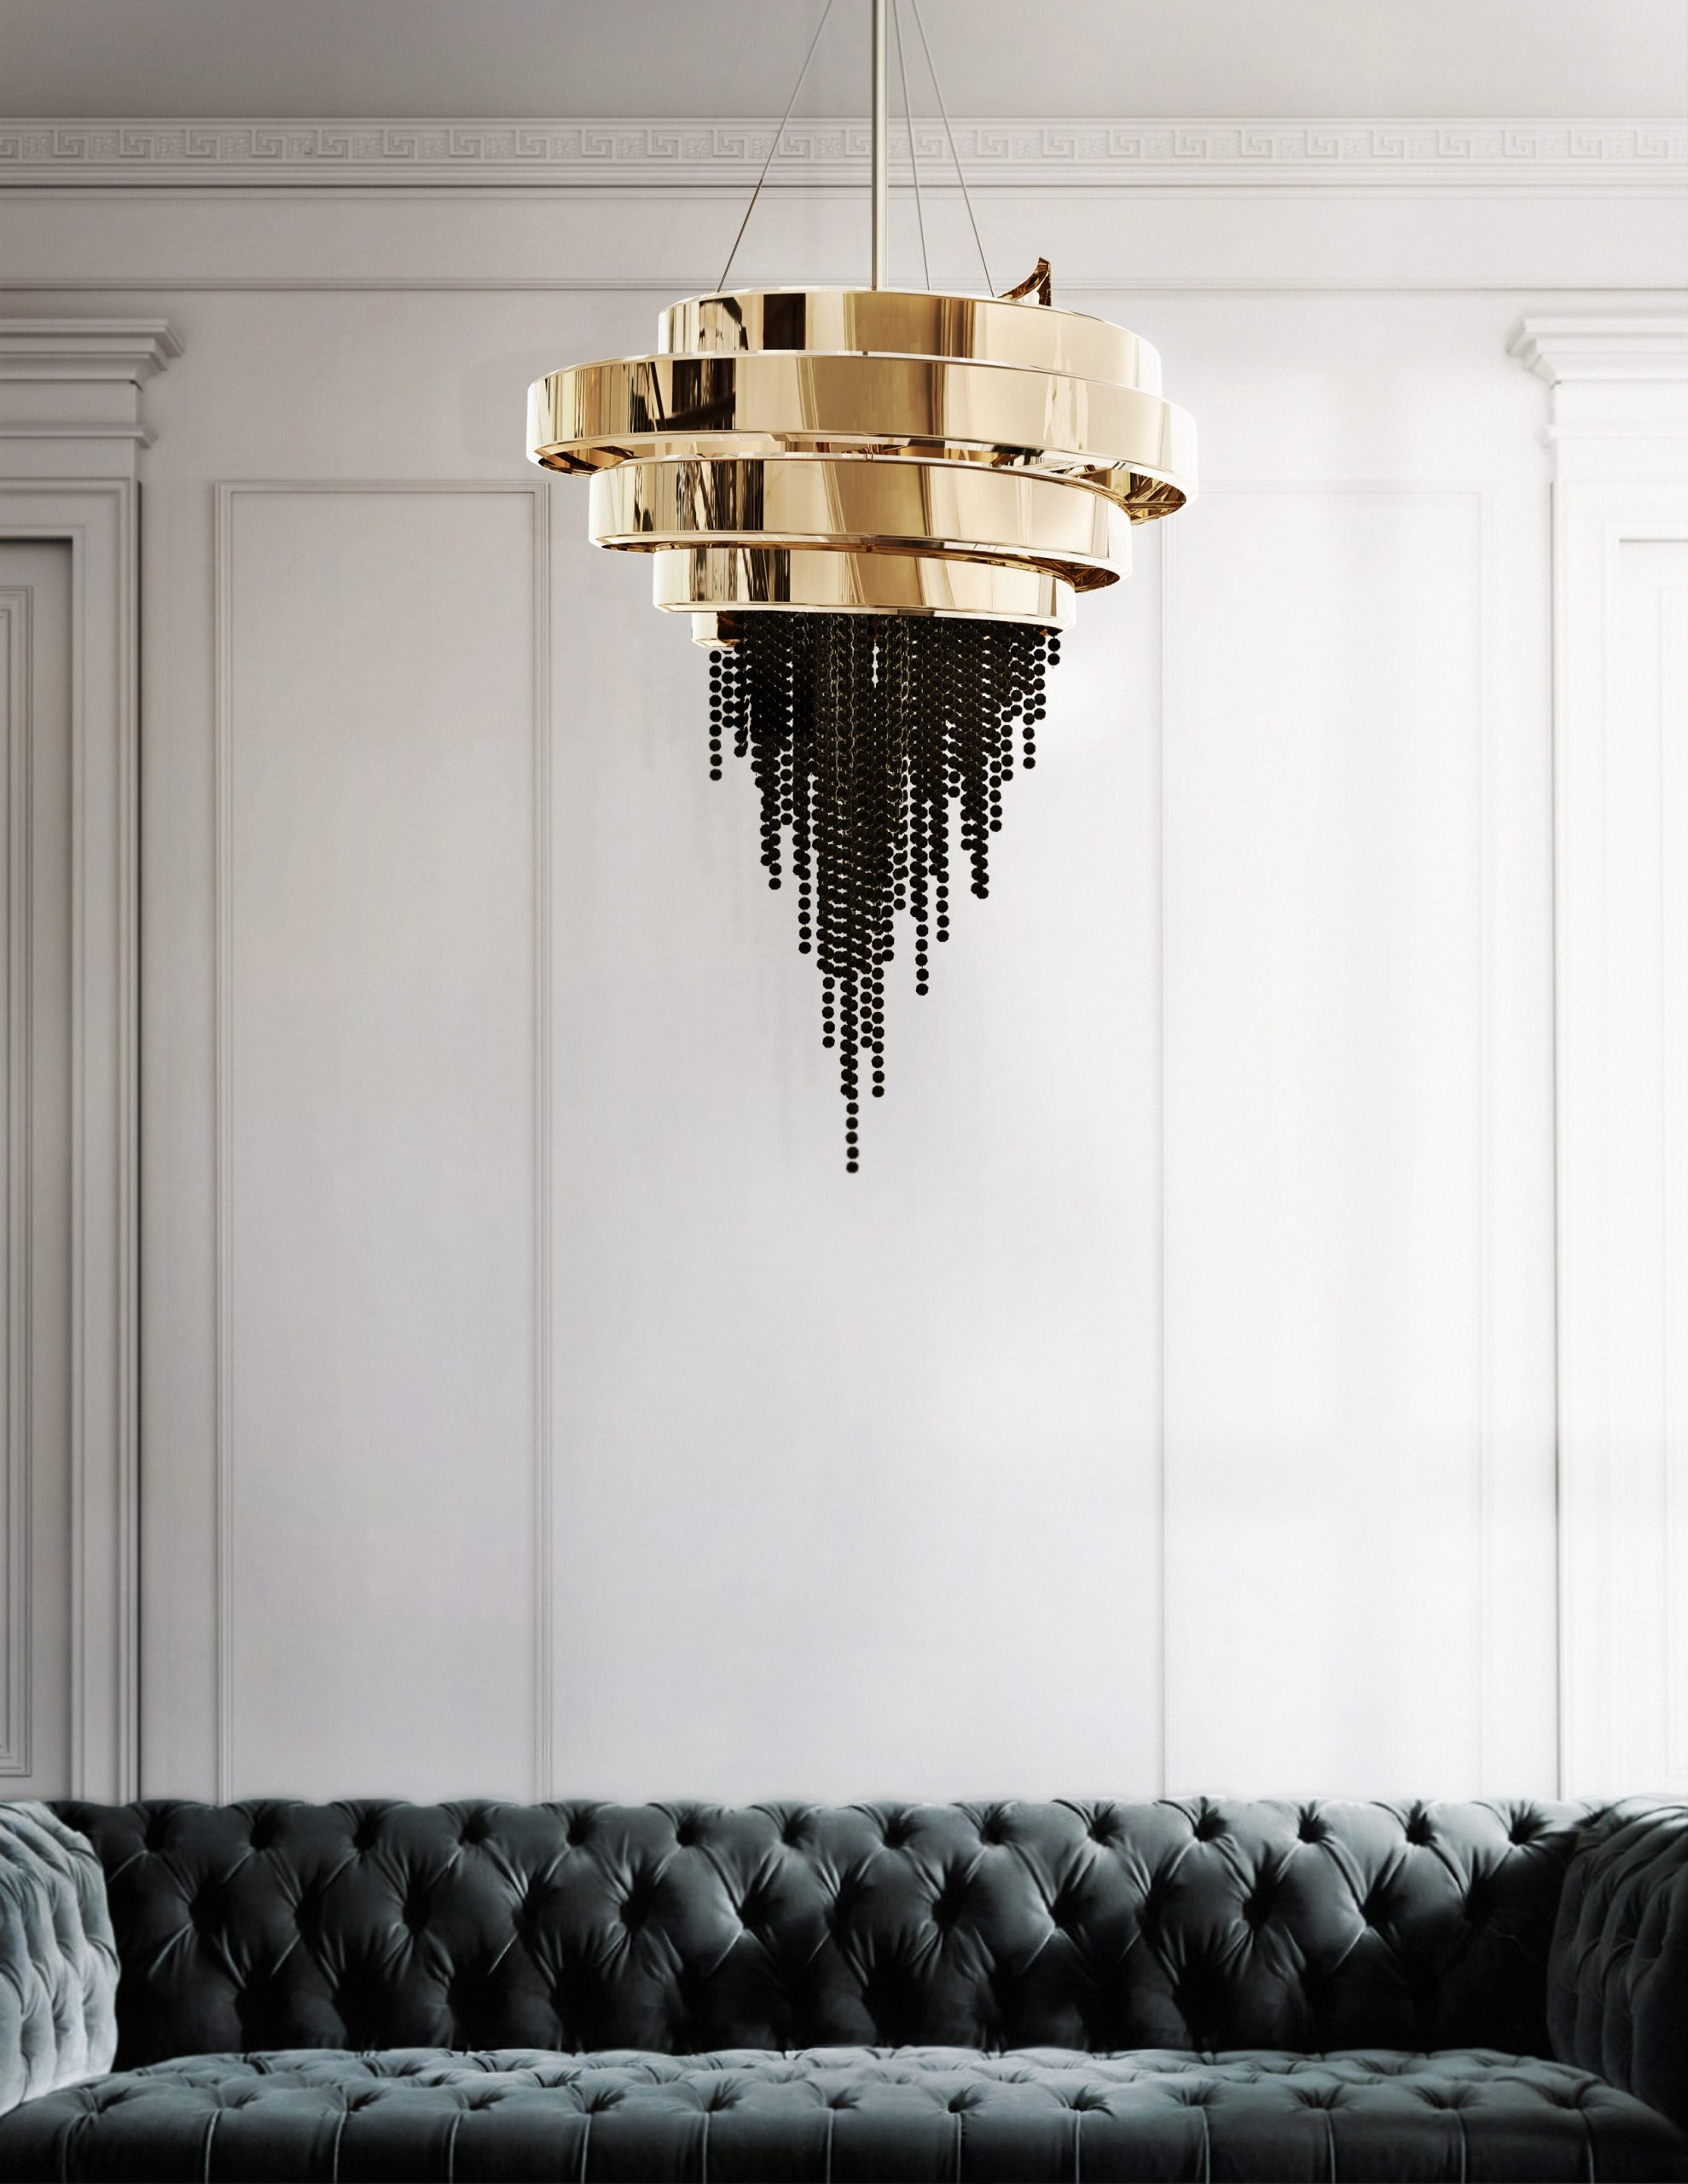 interior design interior design Interior design ideas for the fall: Must have pieces ready to ship! guggenheim chandelier 02 scaled